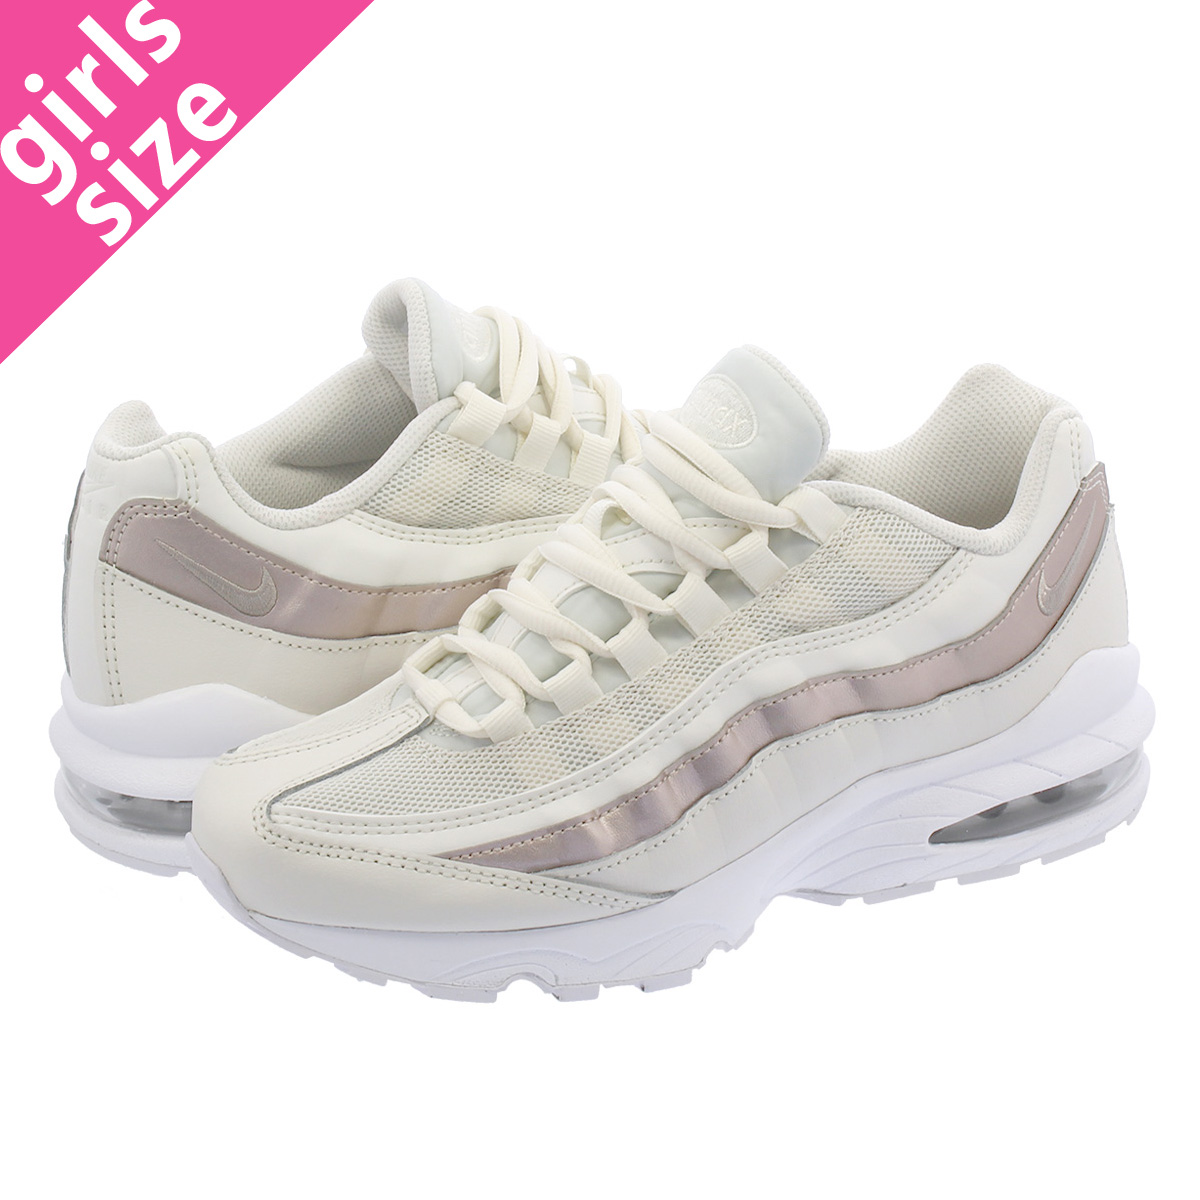 pretty nice 7da47 73bd7 NIKE AIR MAX 95 GS Kie Ney AMAX 95 GS BONE ROSE GOLD